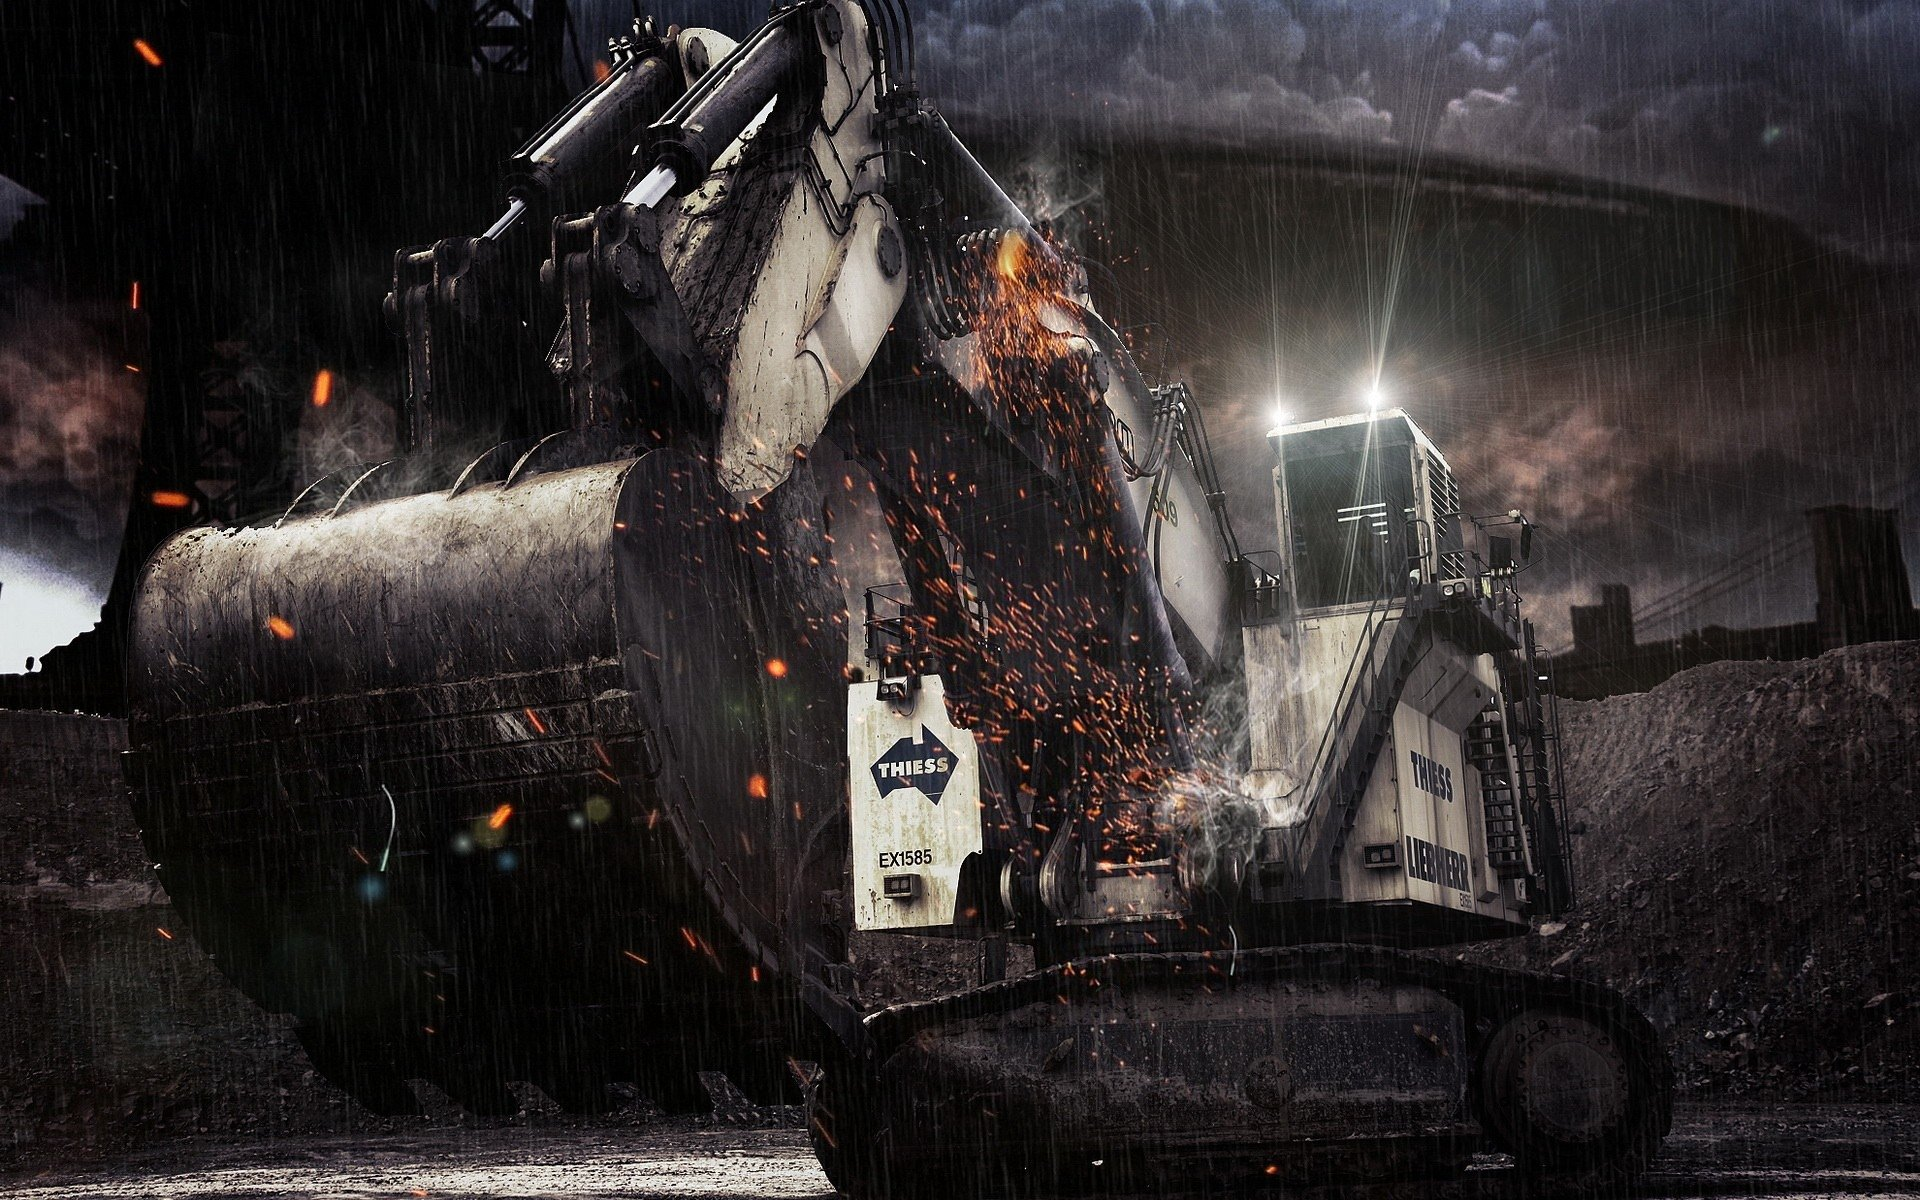 liebherr full hd wallpaper and background image